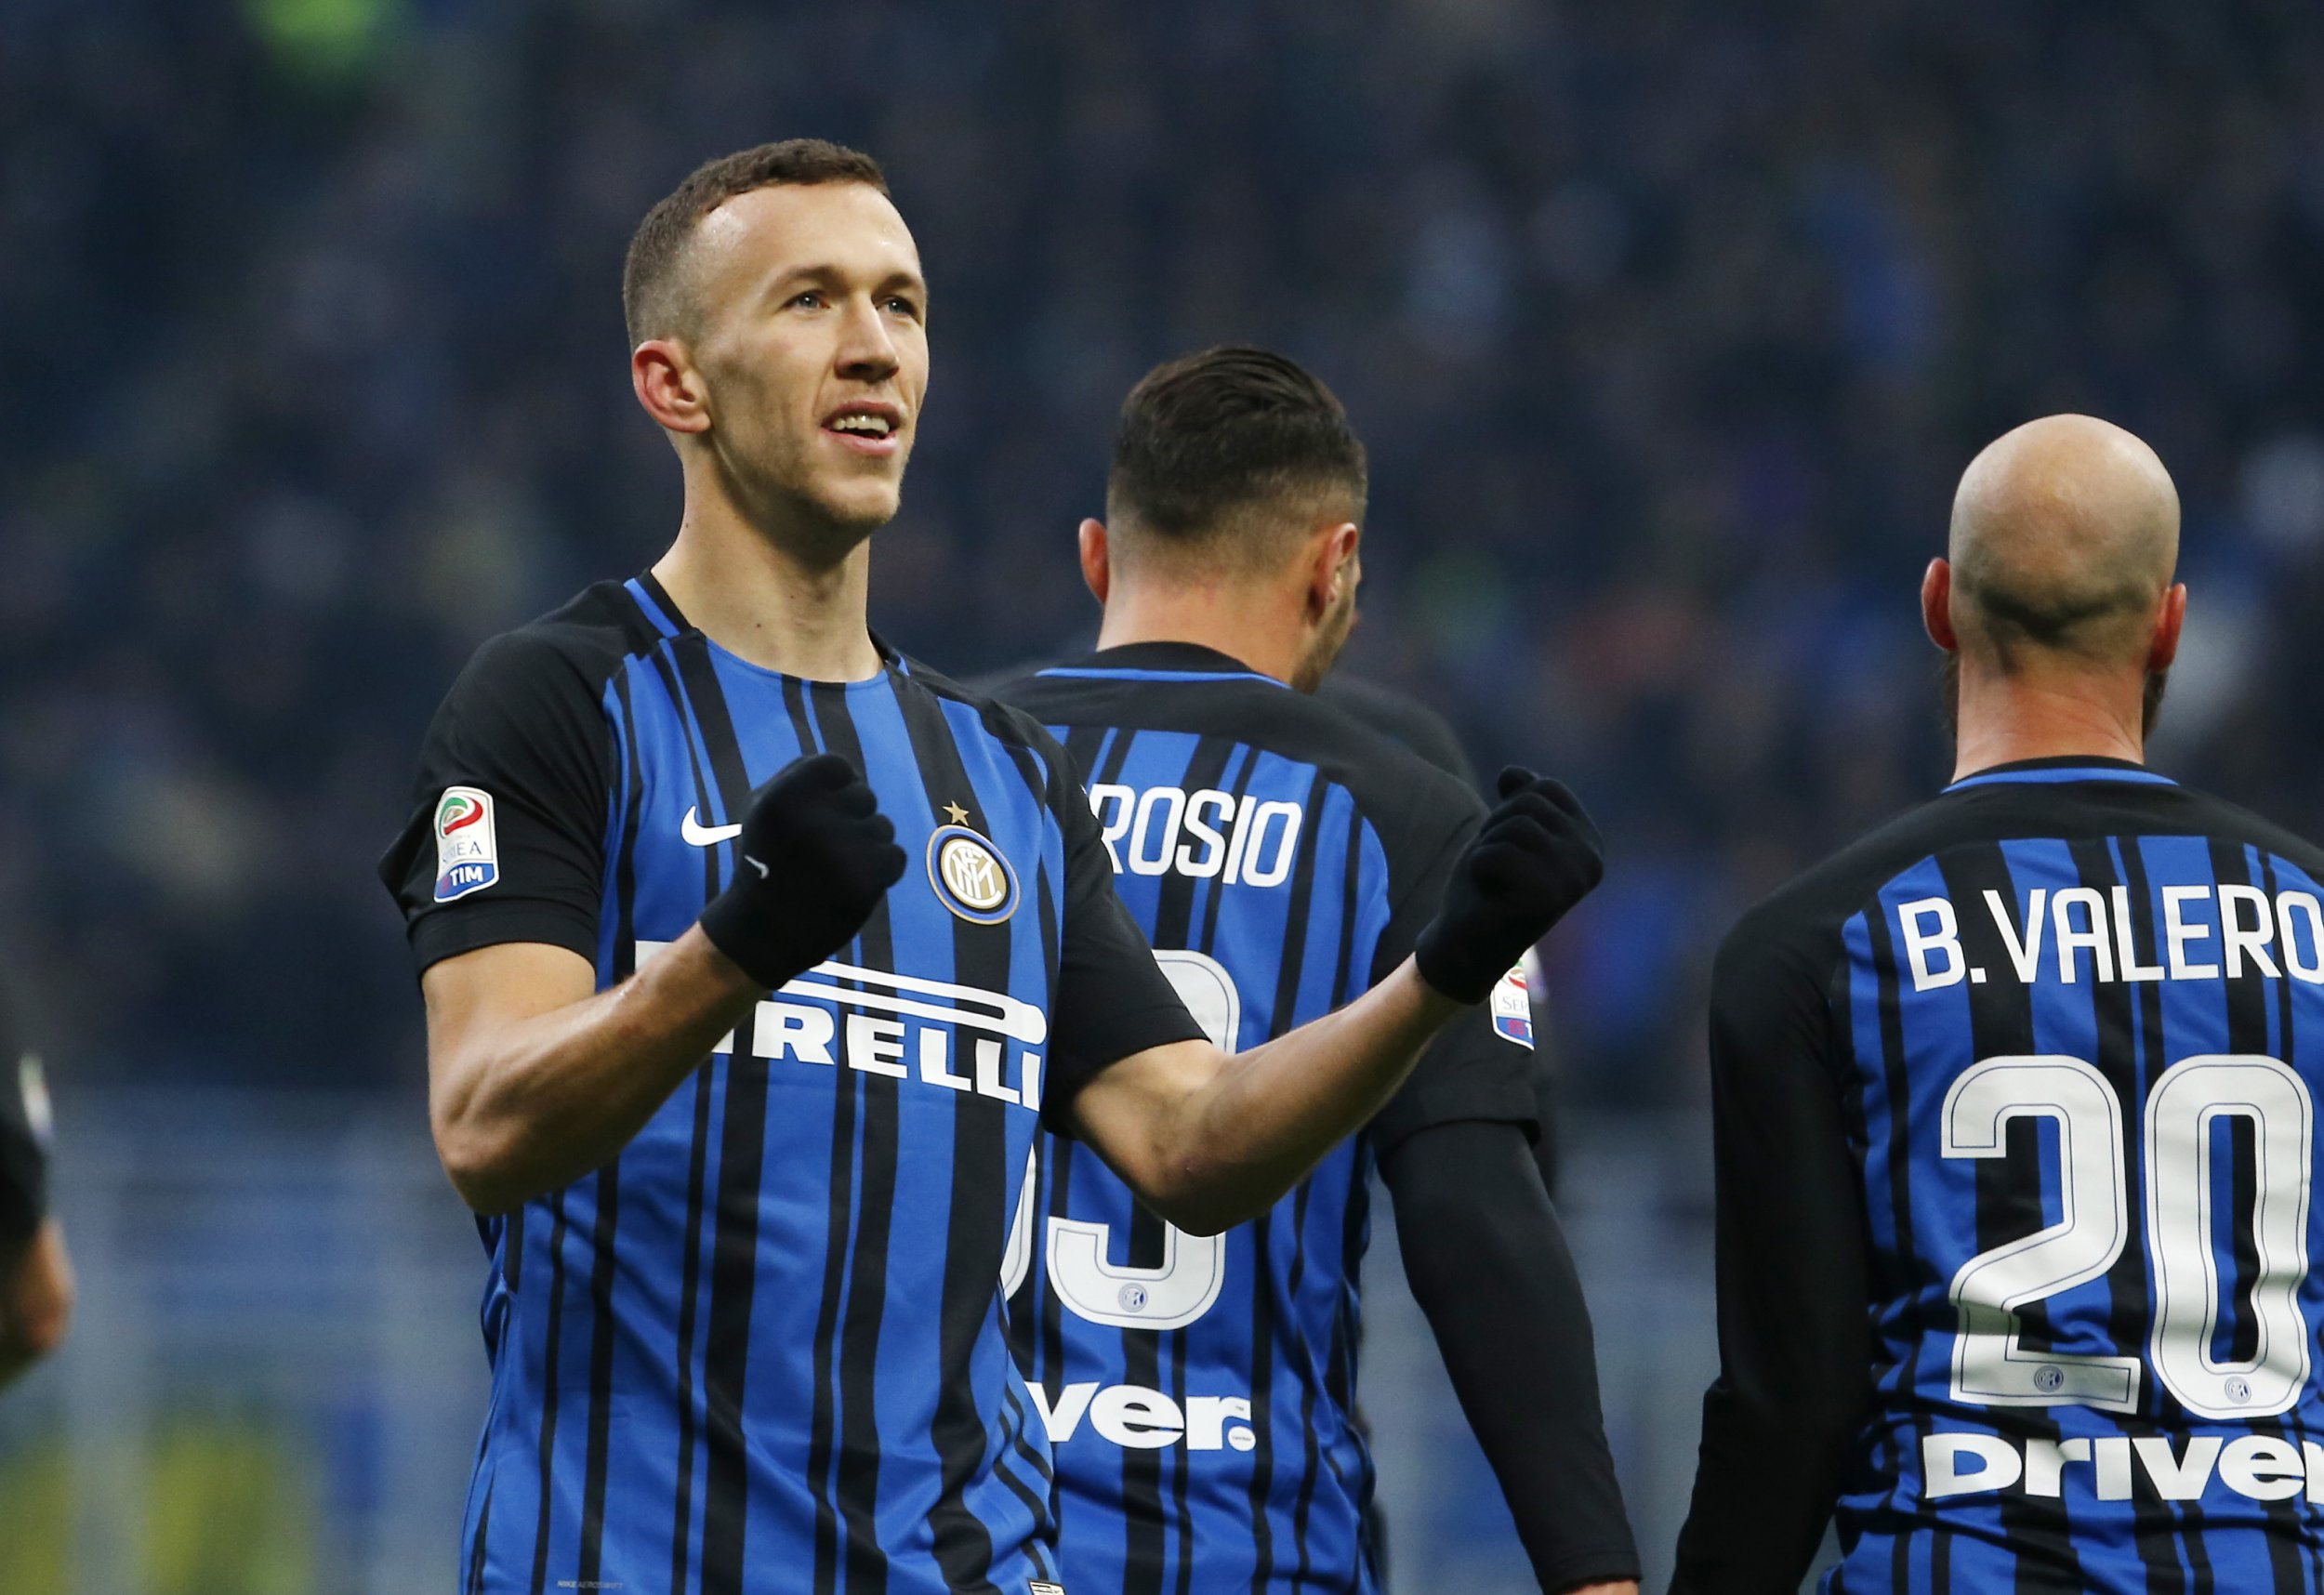 Ivan Perisic looks at the fans with his fists clenched